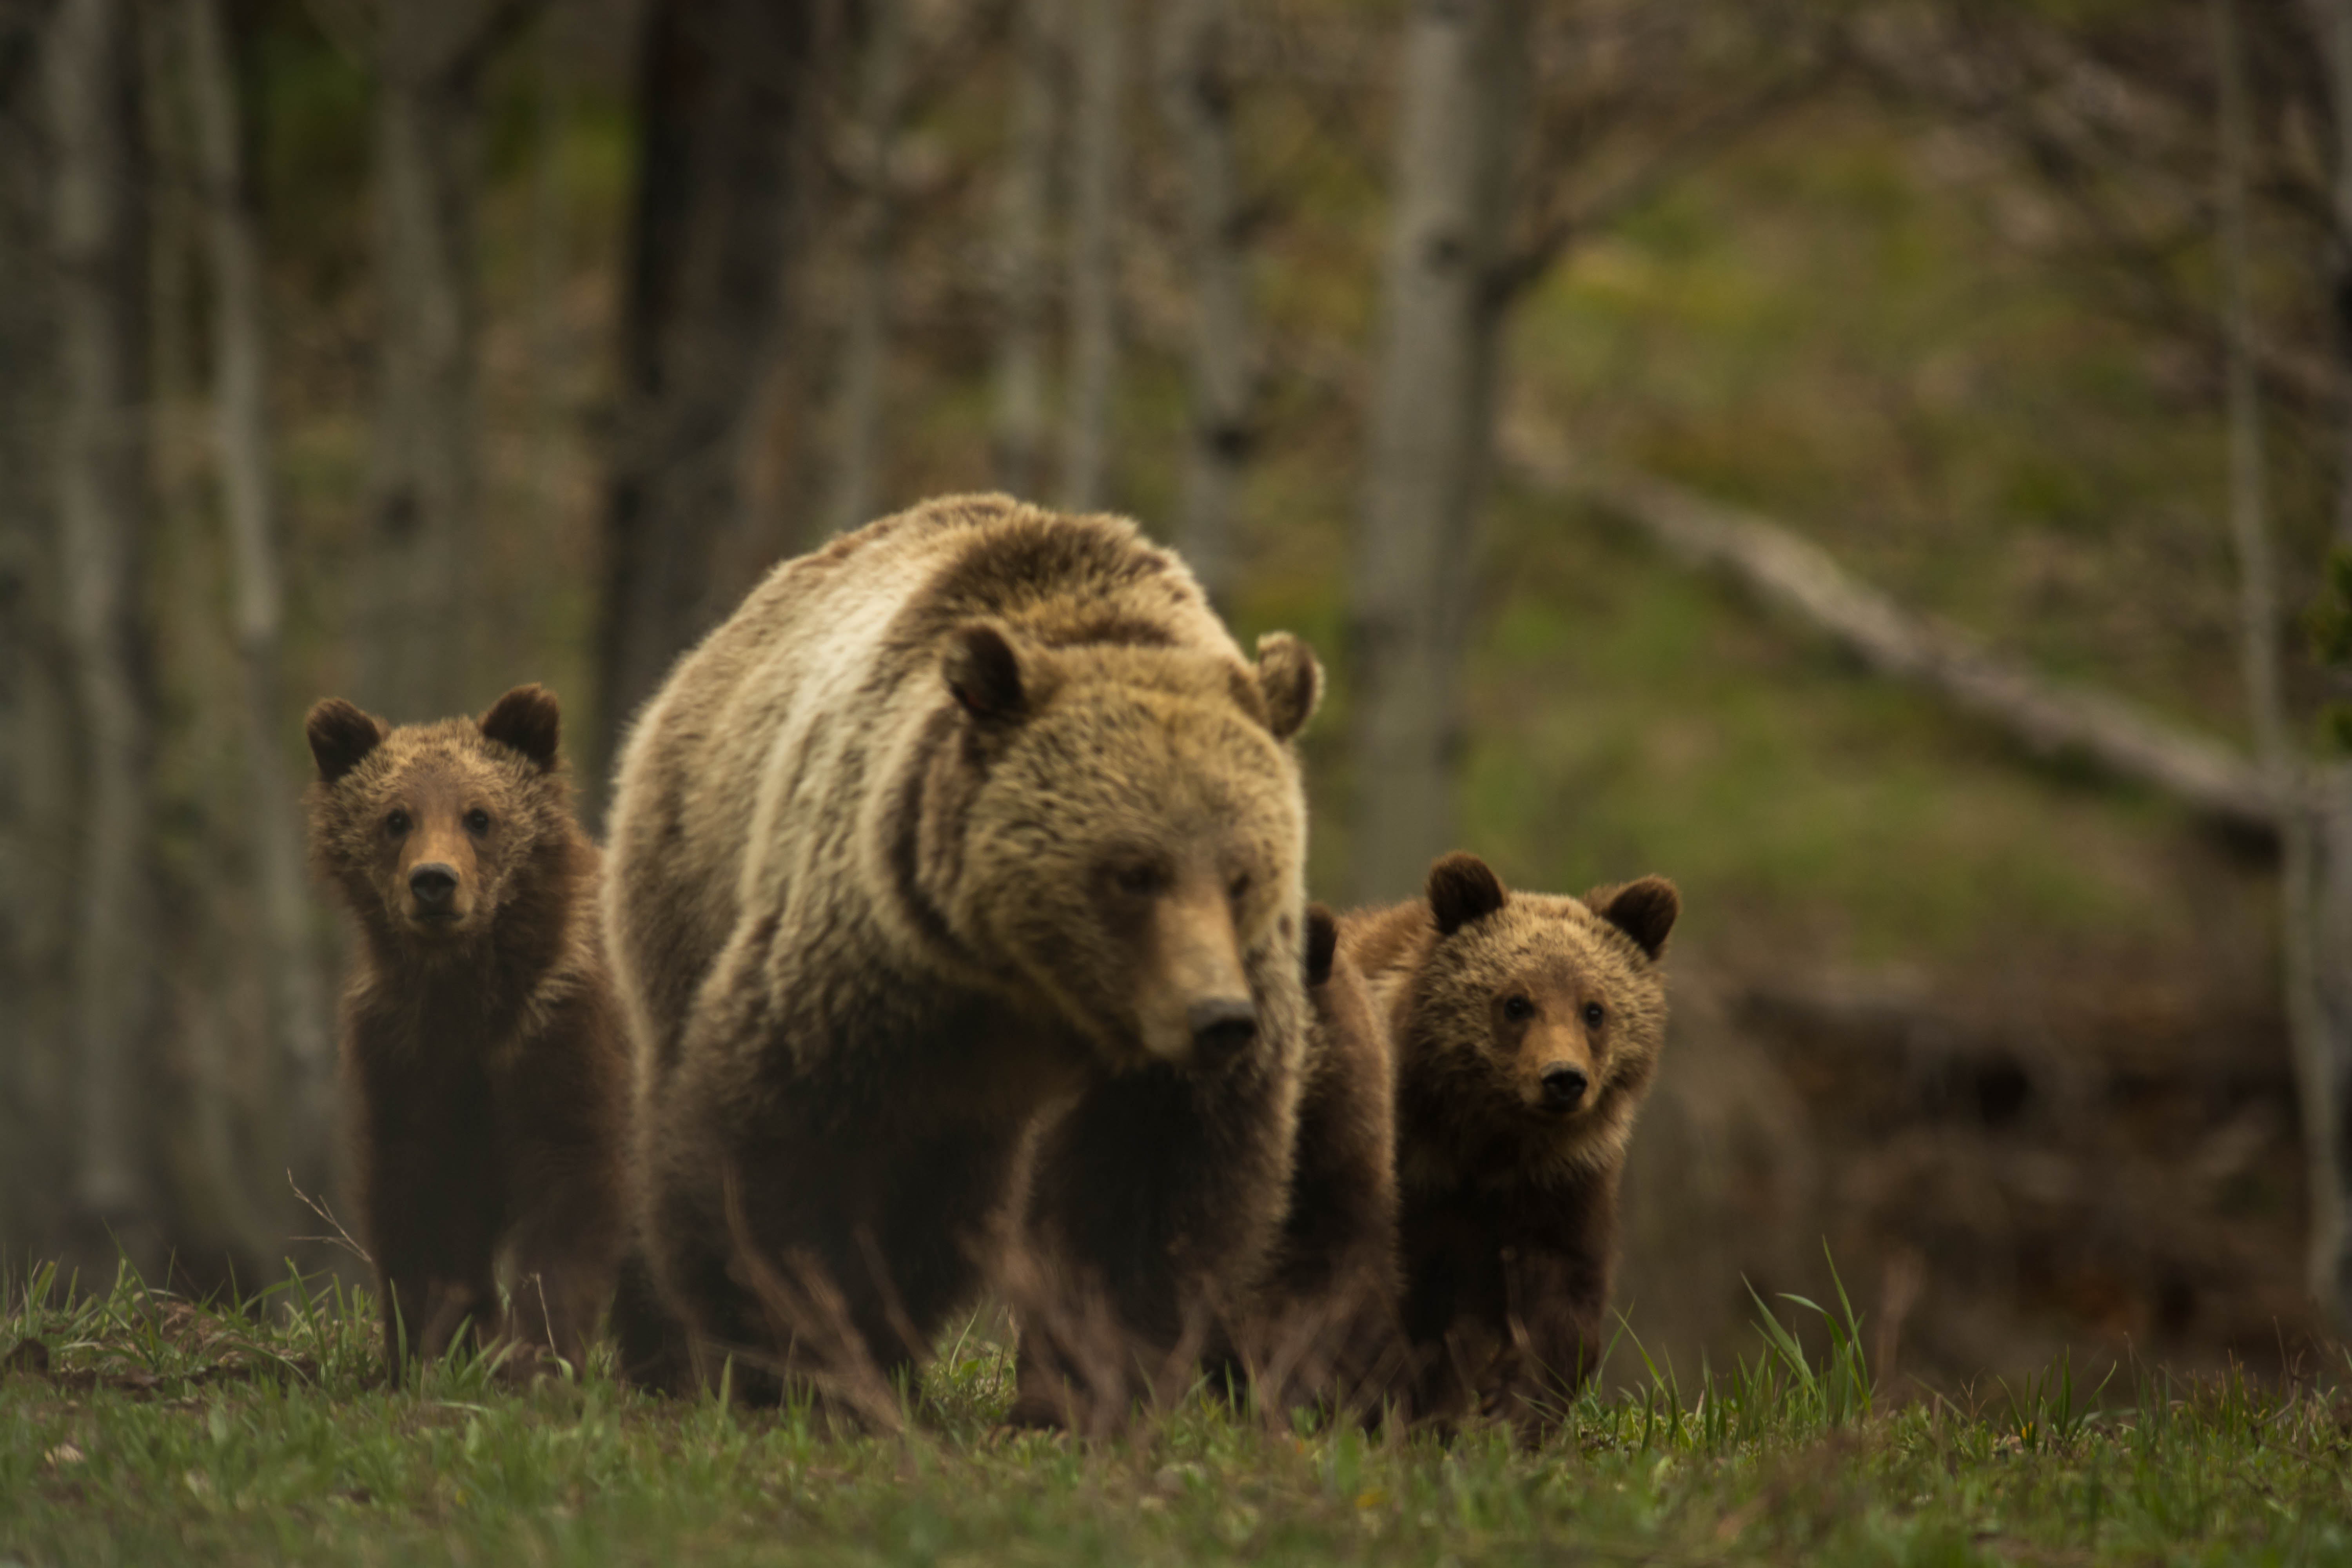 Https Scottseyephotos Wordpress Com Tag Grizzly Bear